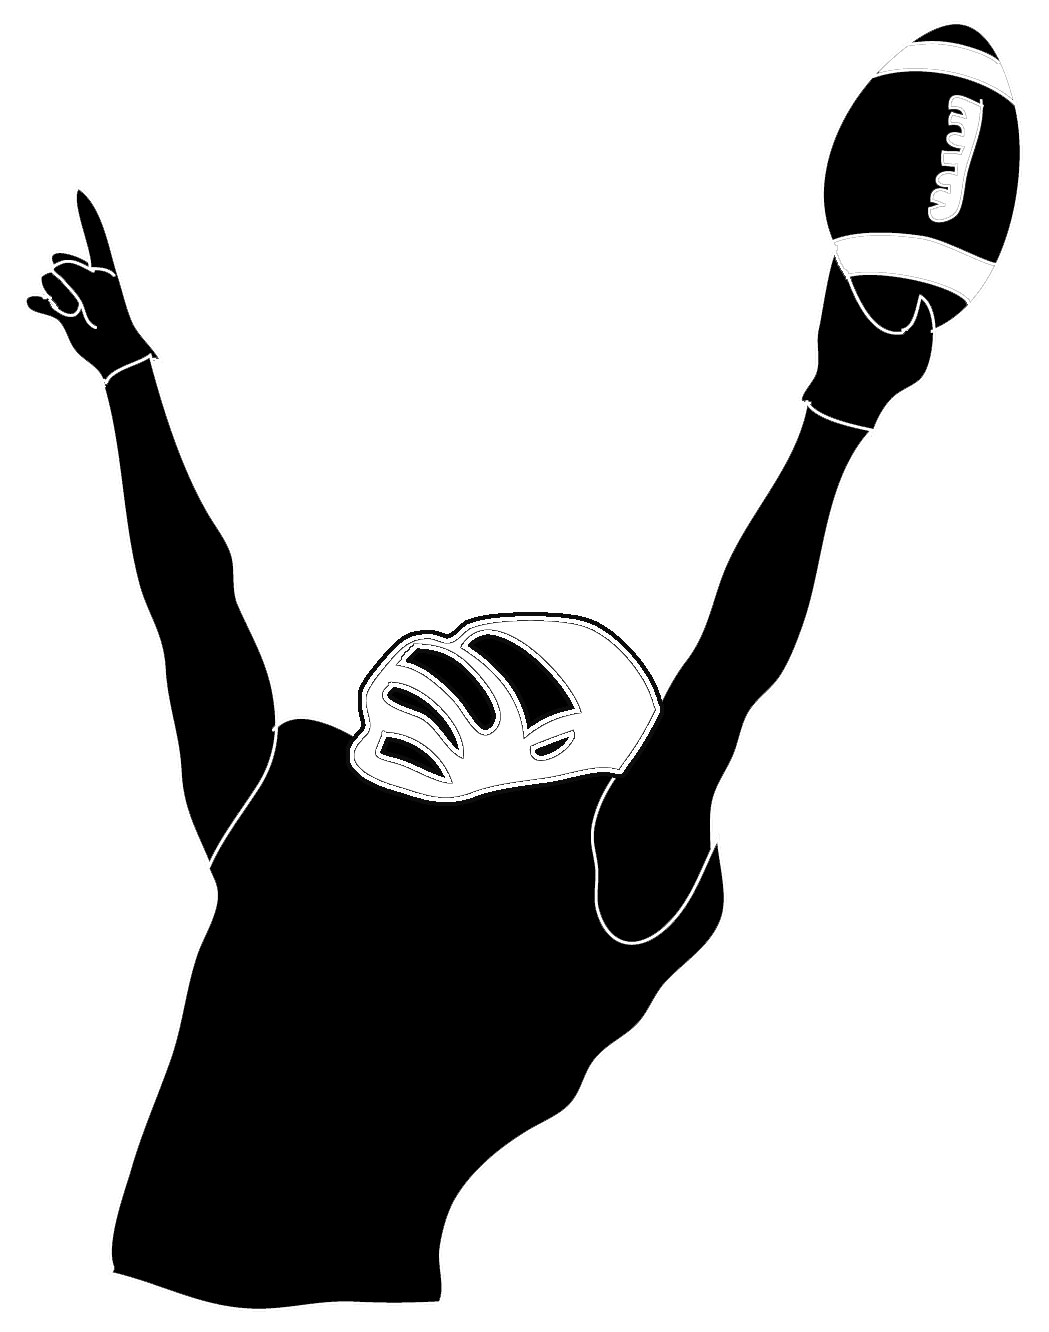 victory-football-player